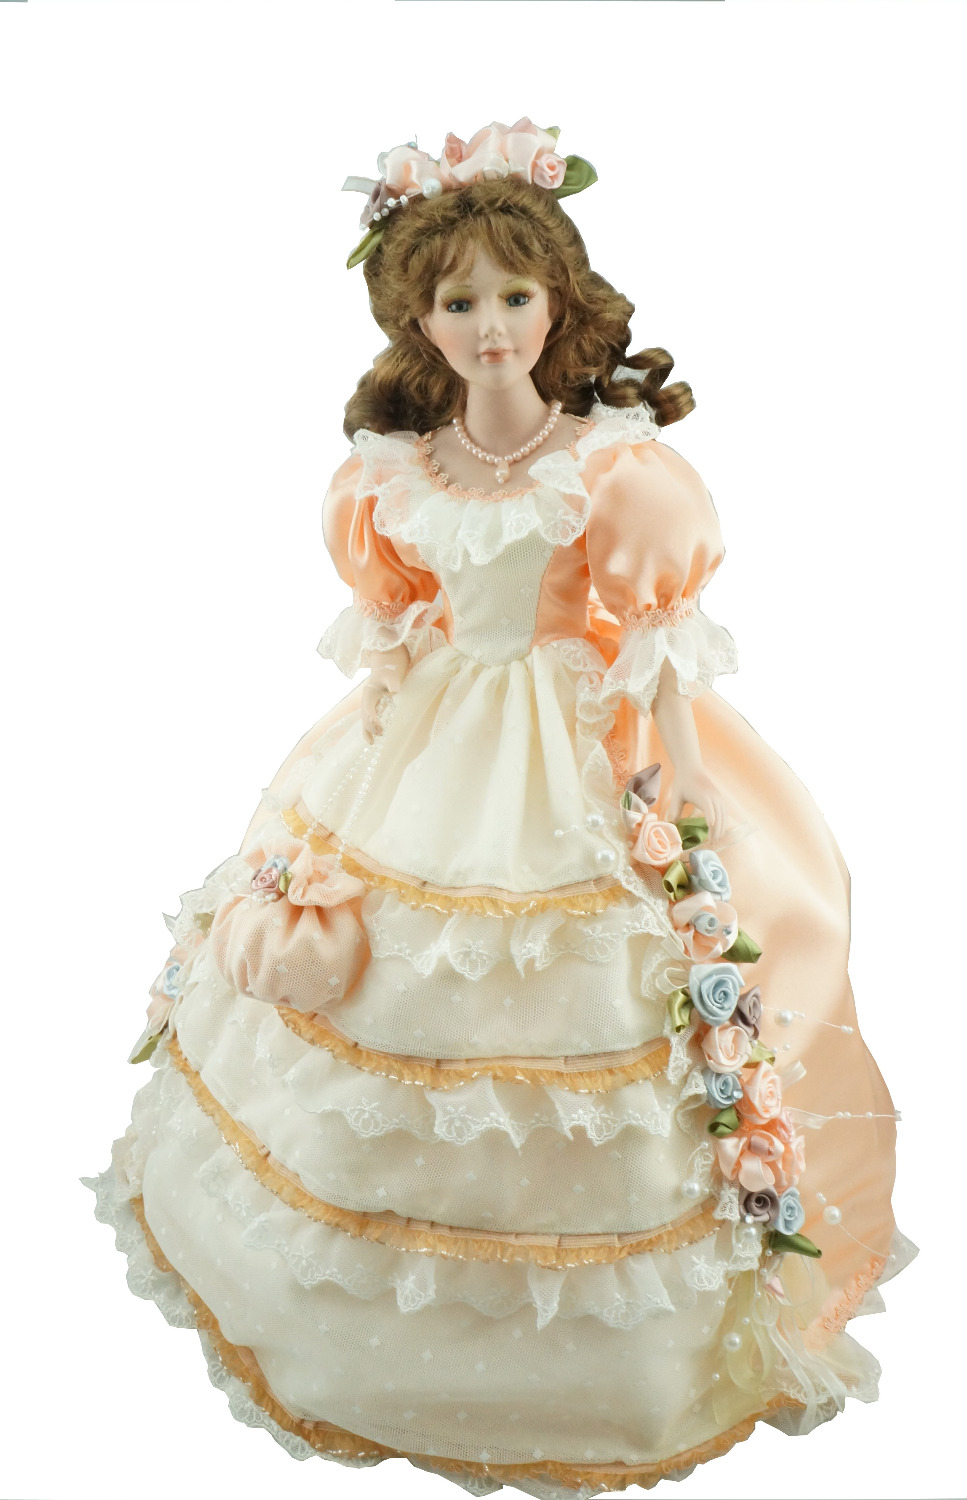 Cosette spinning music box home collection wedding dress for Box for wedding dress